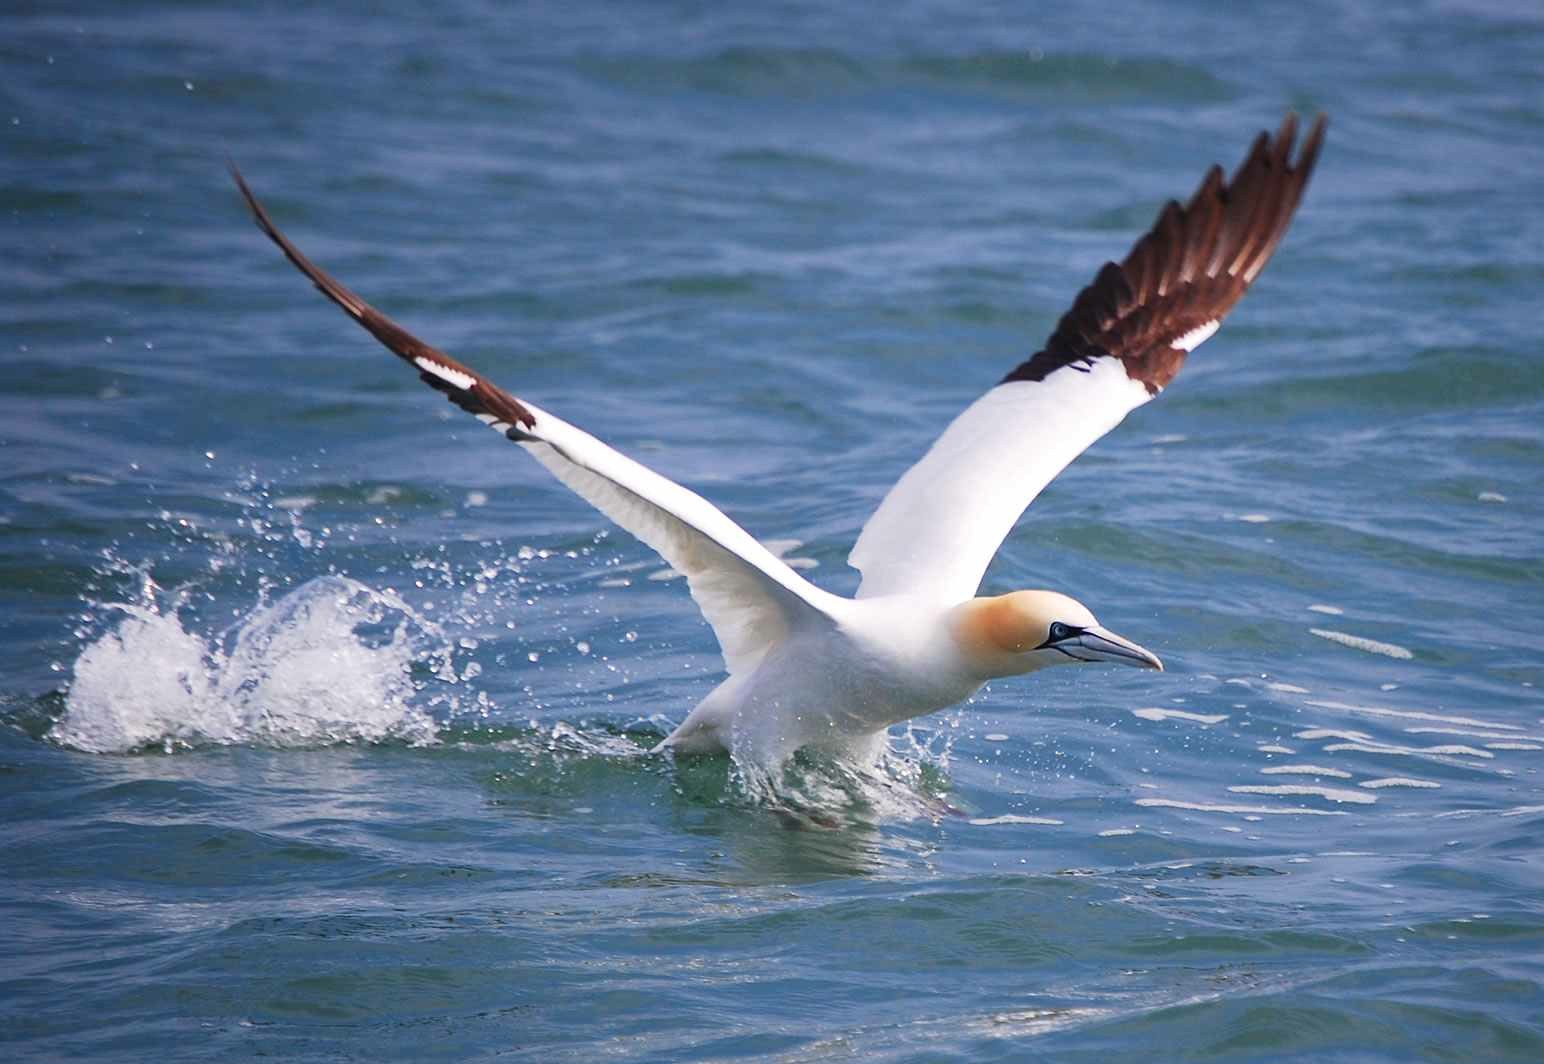 a gannet takes off from the surface of the water